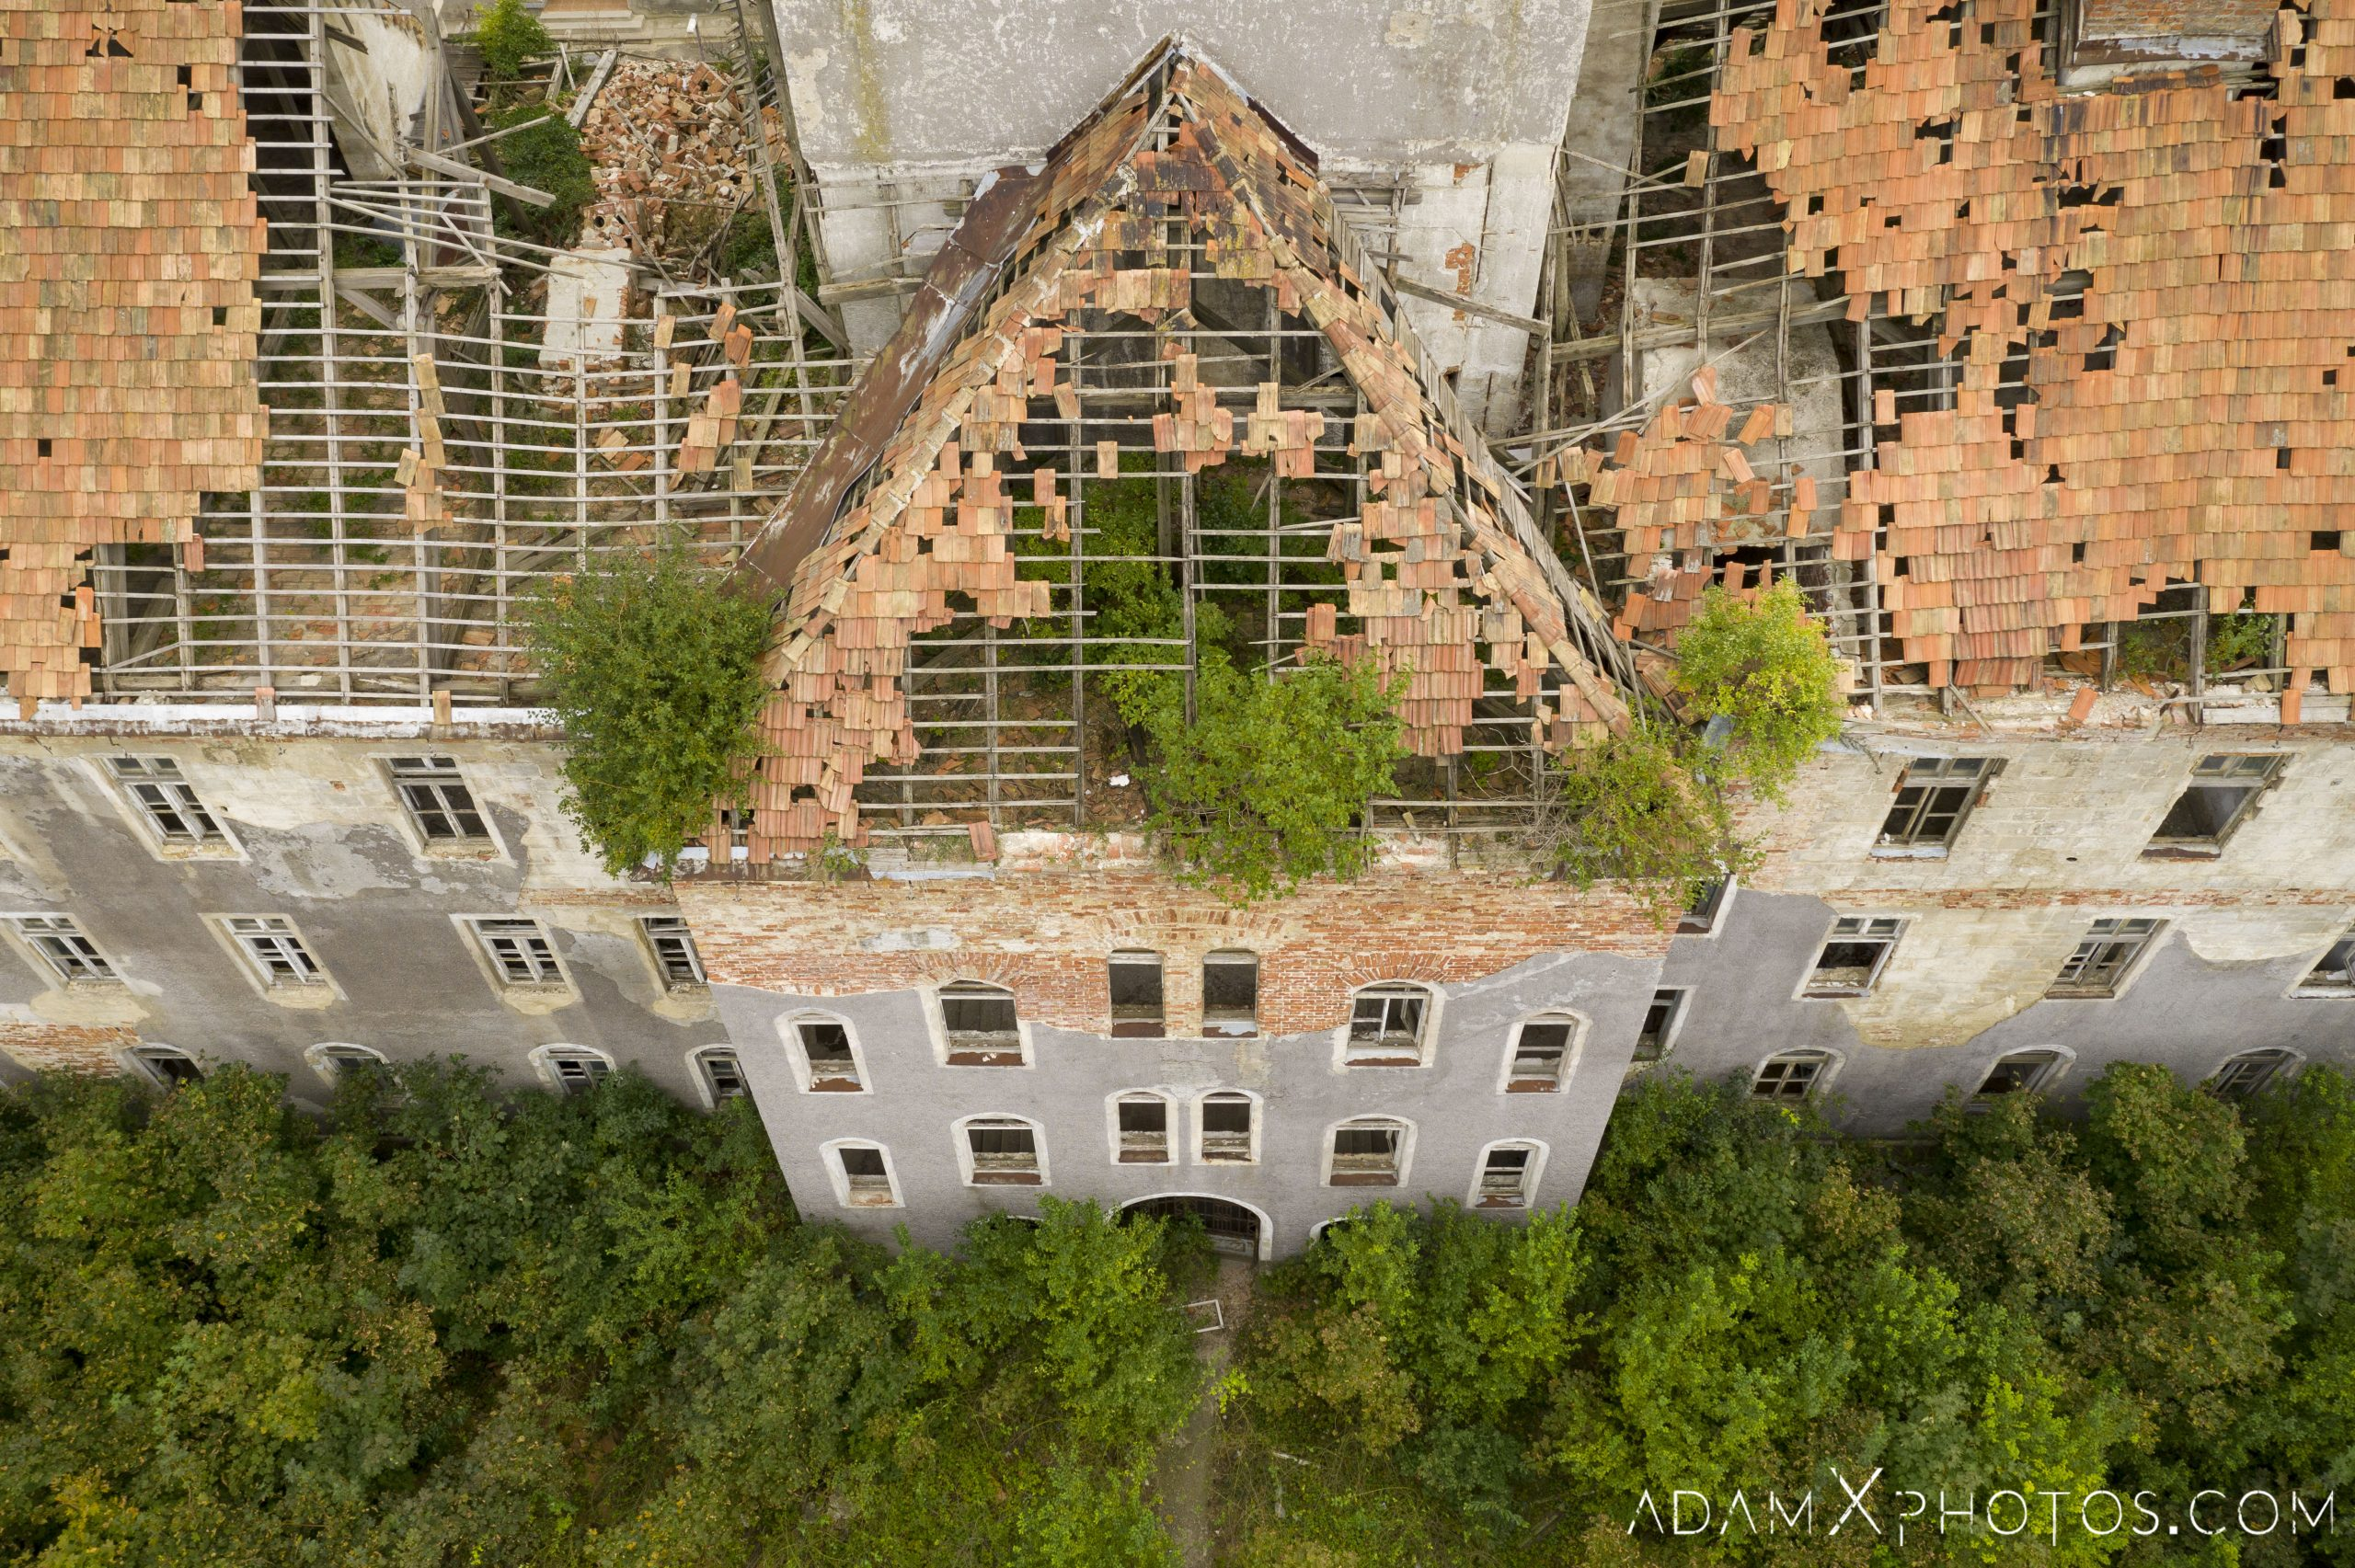 Hajmaskér Barracks drone aerial from above hungary Adam X Urbex Urban Exploration Access 2018 Abandoned decay ruins lost forgotten derelict location creepy haunting eerie